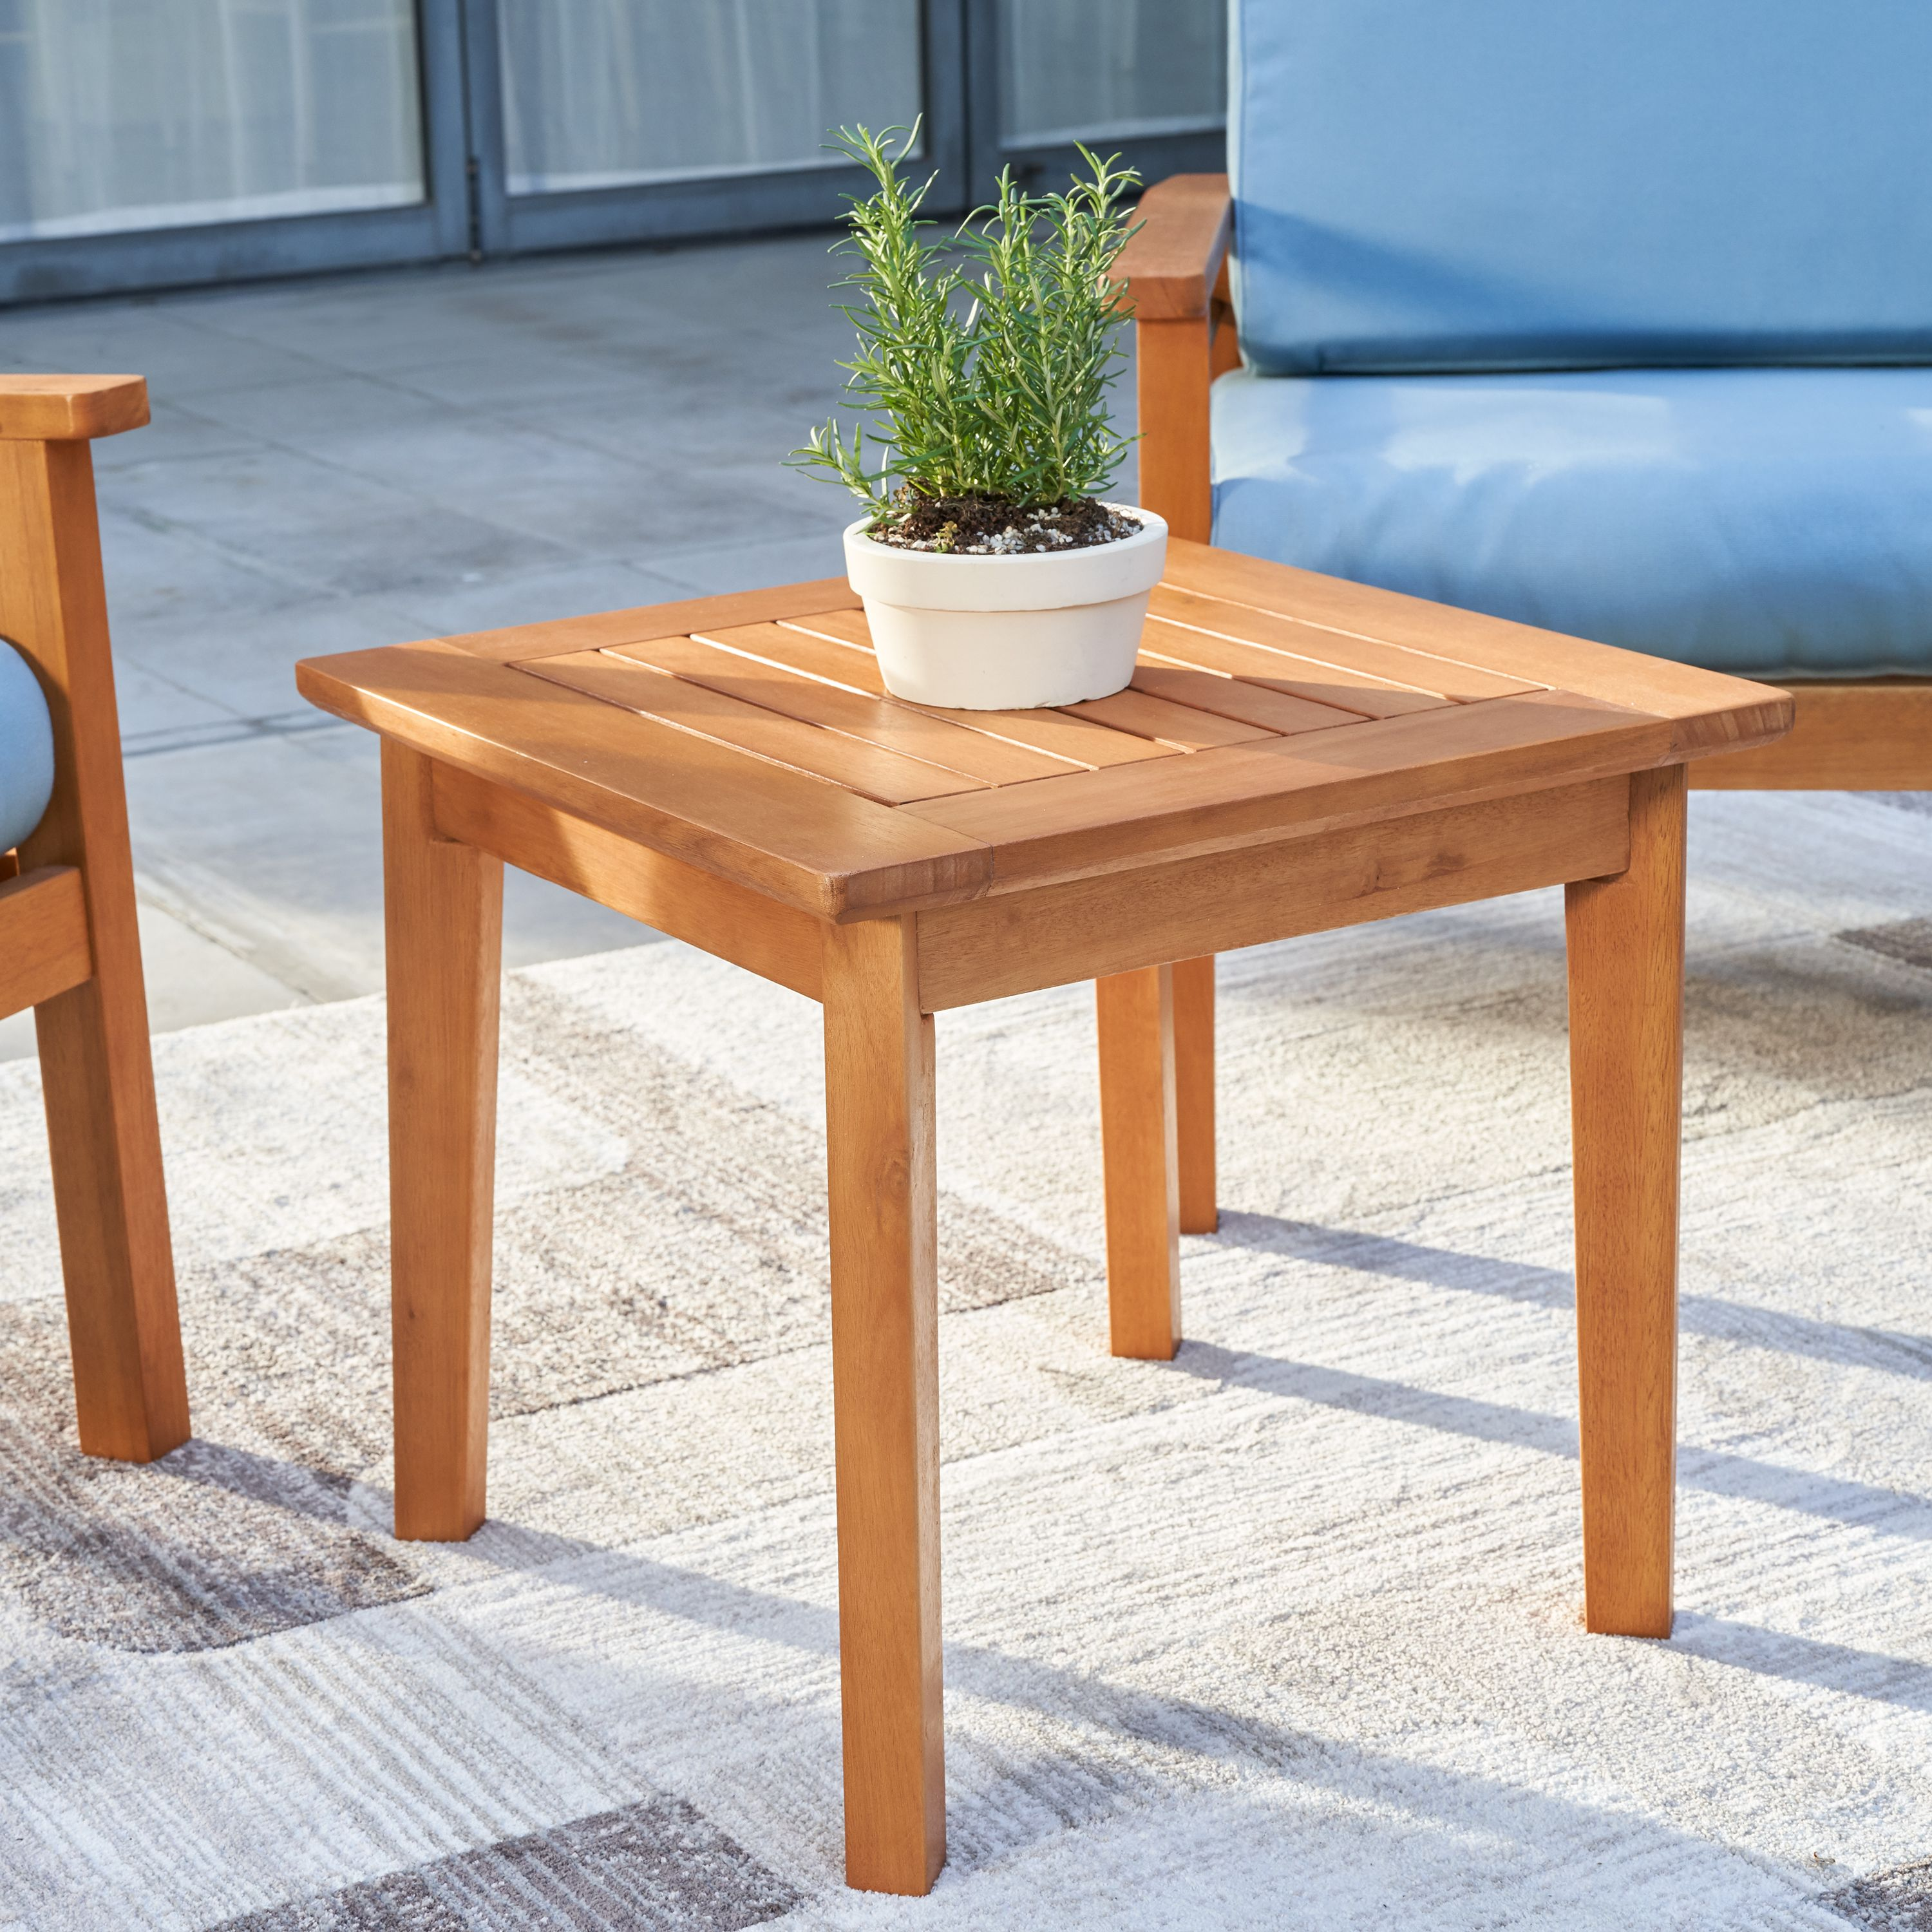 gloucester contemporary patio wood side table